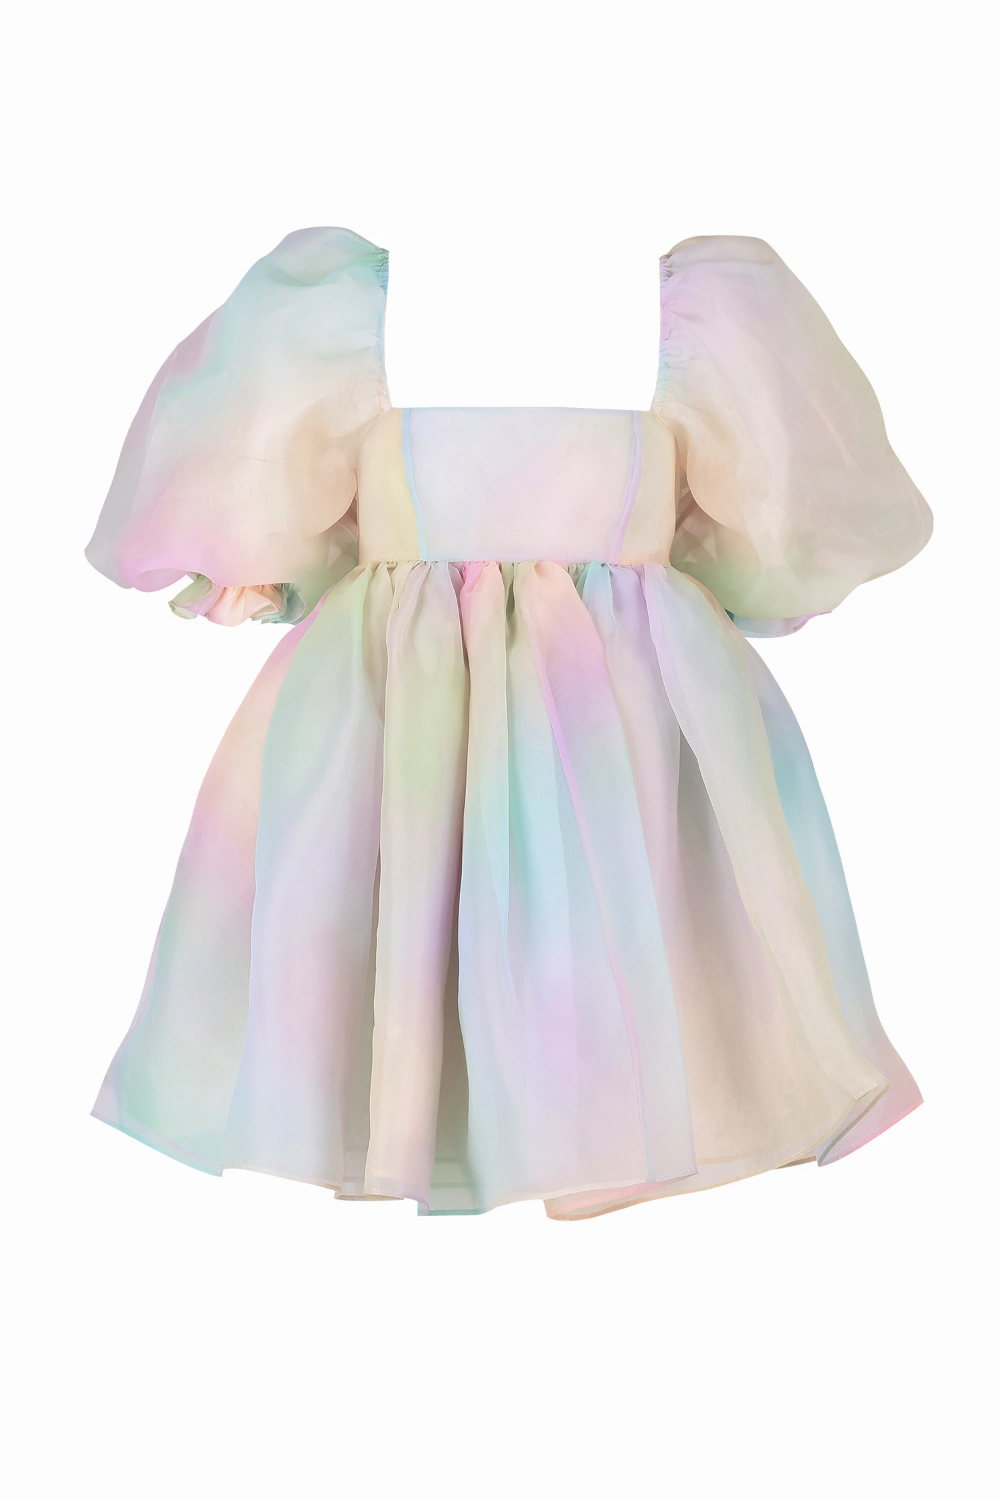 The Rainbow Puff Dress-Pre Order shipping June 15th – #19